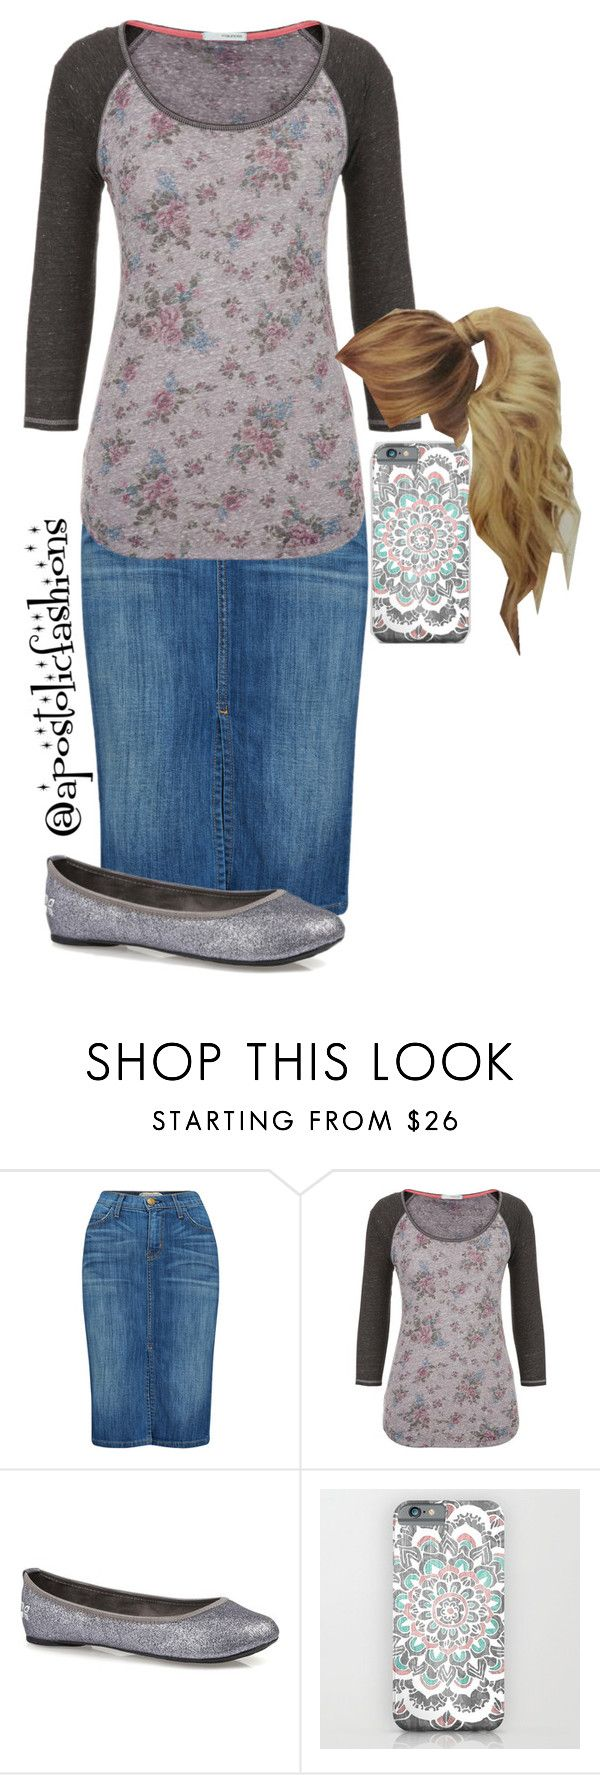 """""""Apostolic Fashions #868"""" by apostolicfashions on Polyvore featuring Current/Elliott and maurices"""